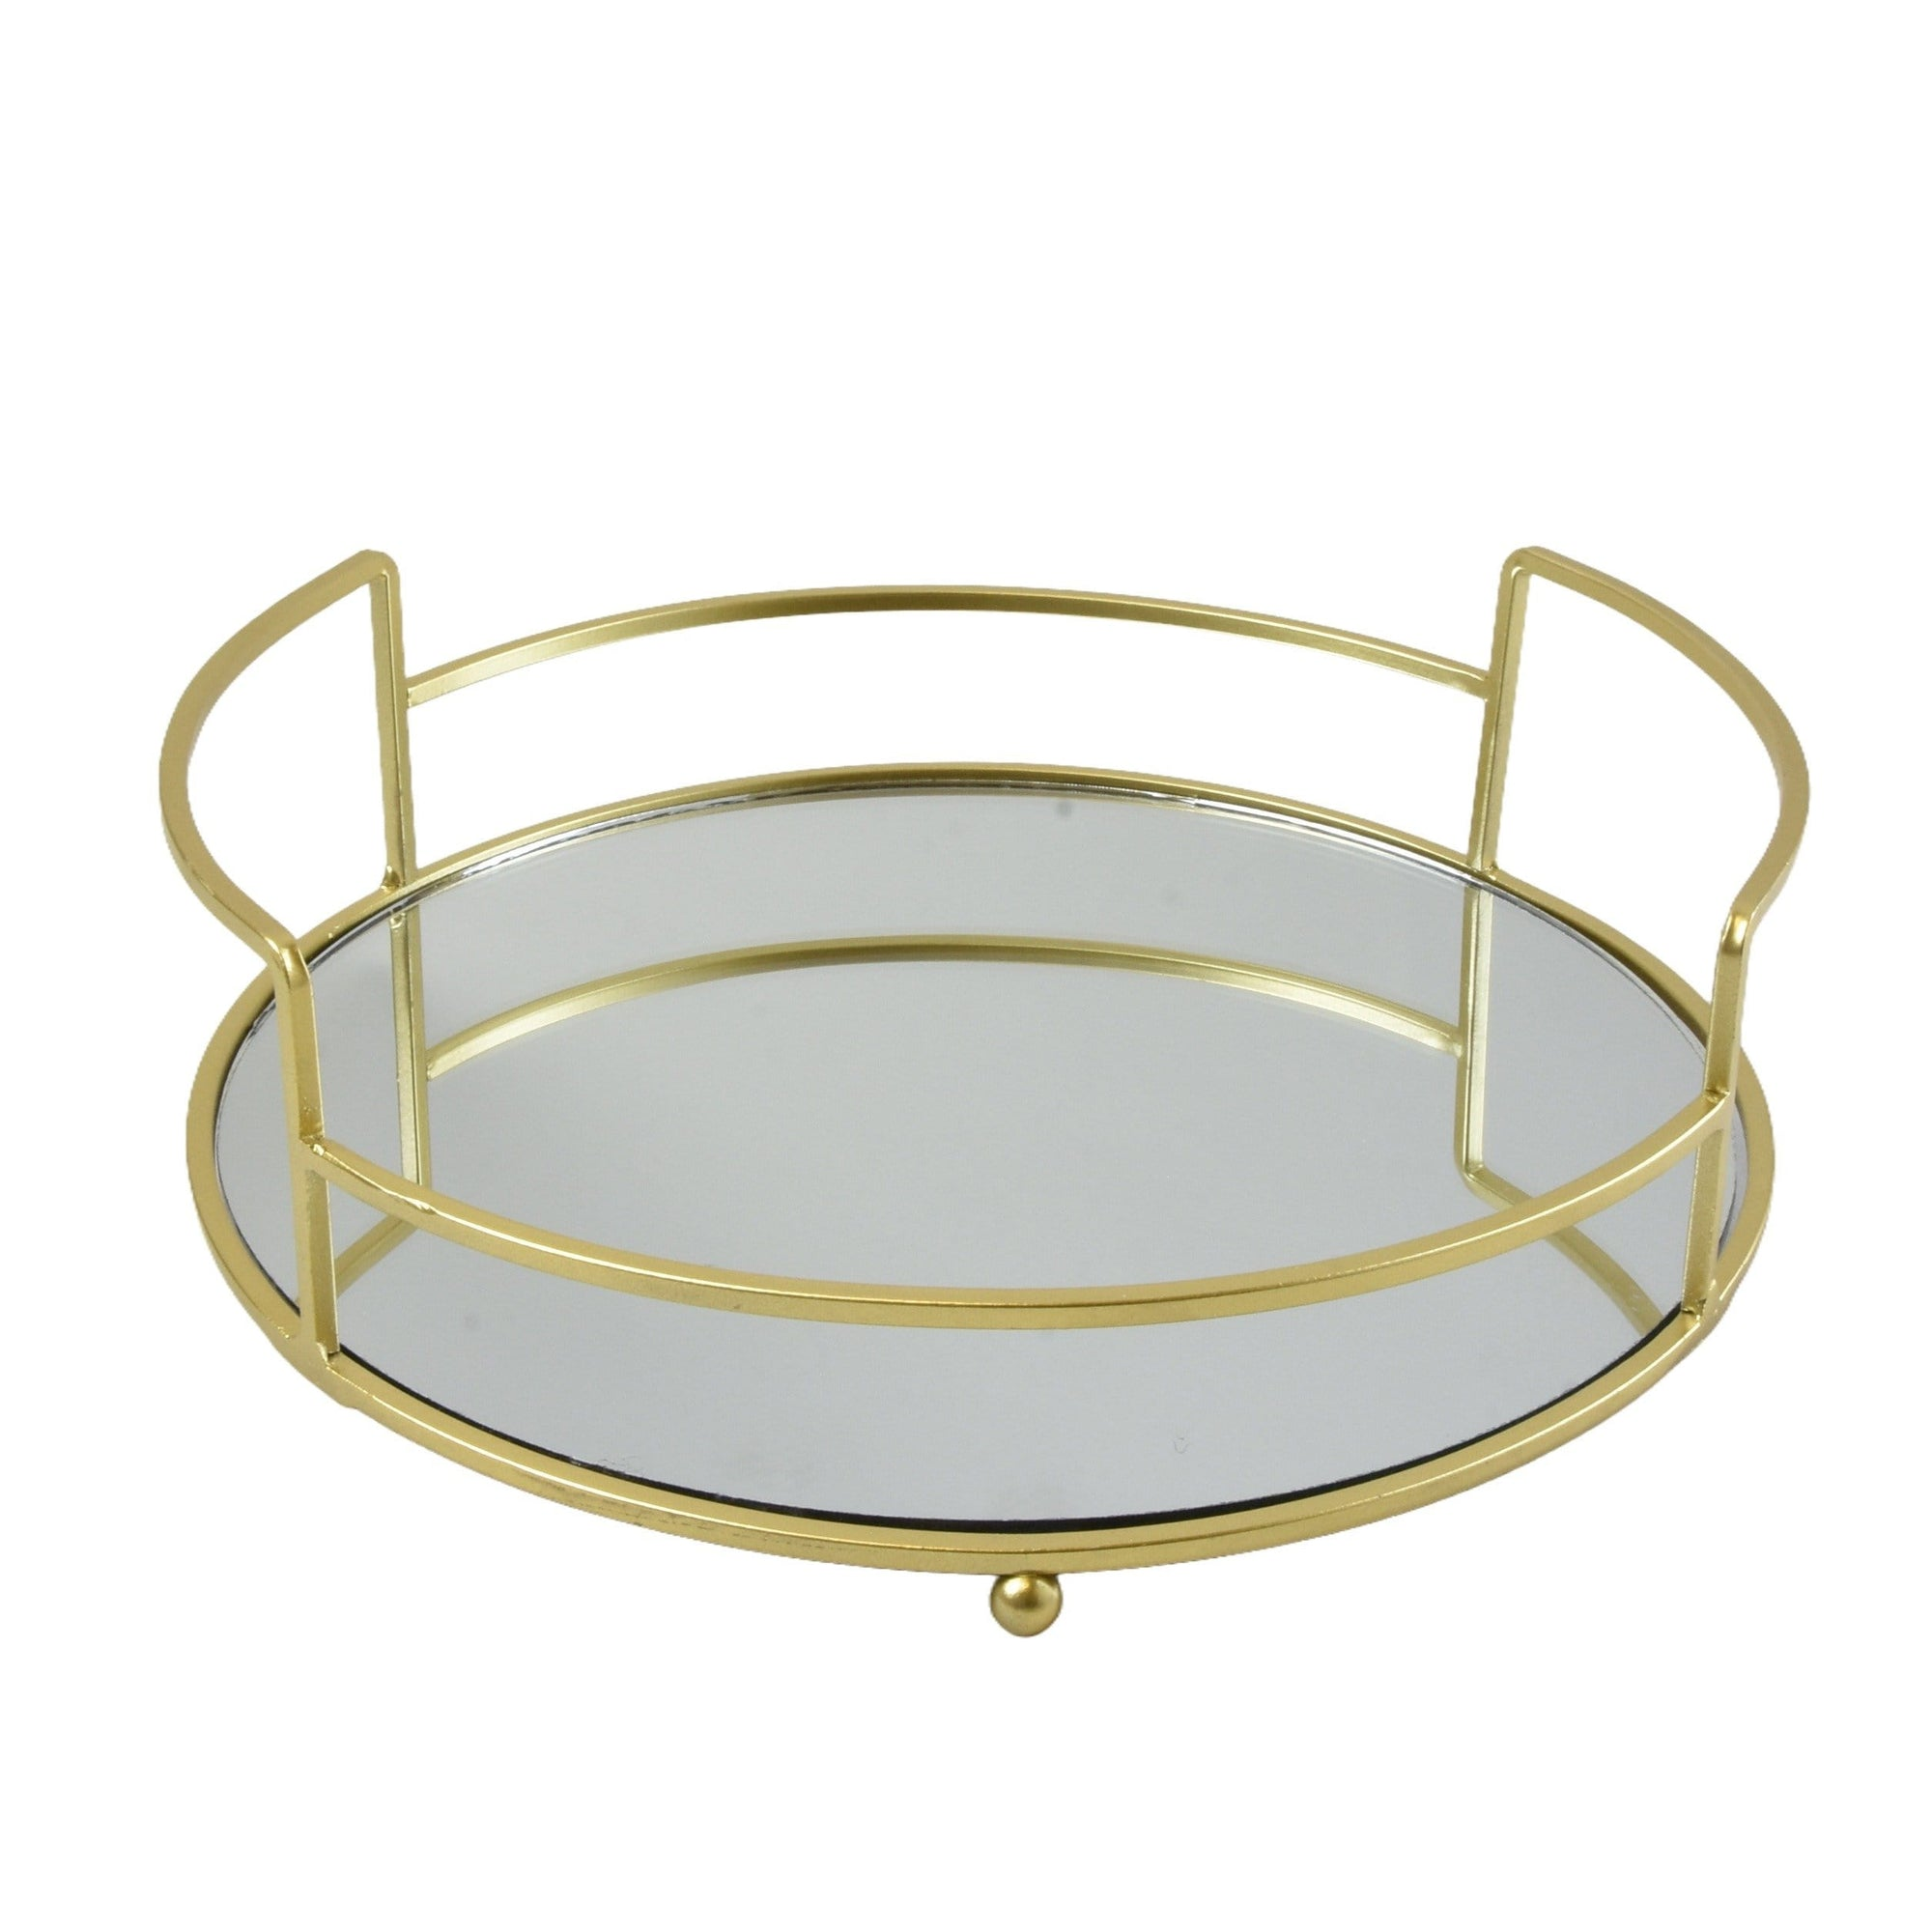 Round Art Deco Gold Mirrored Tray 24cm 2PK